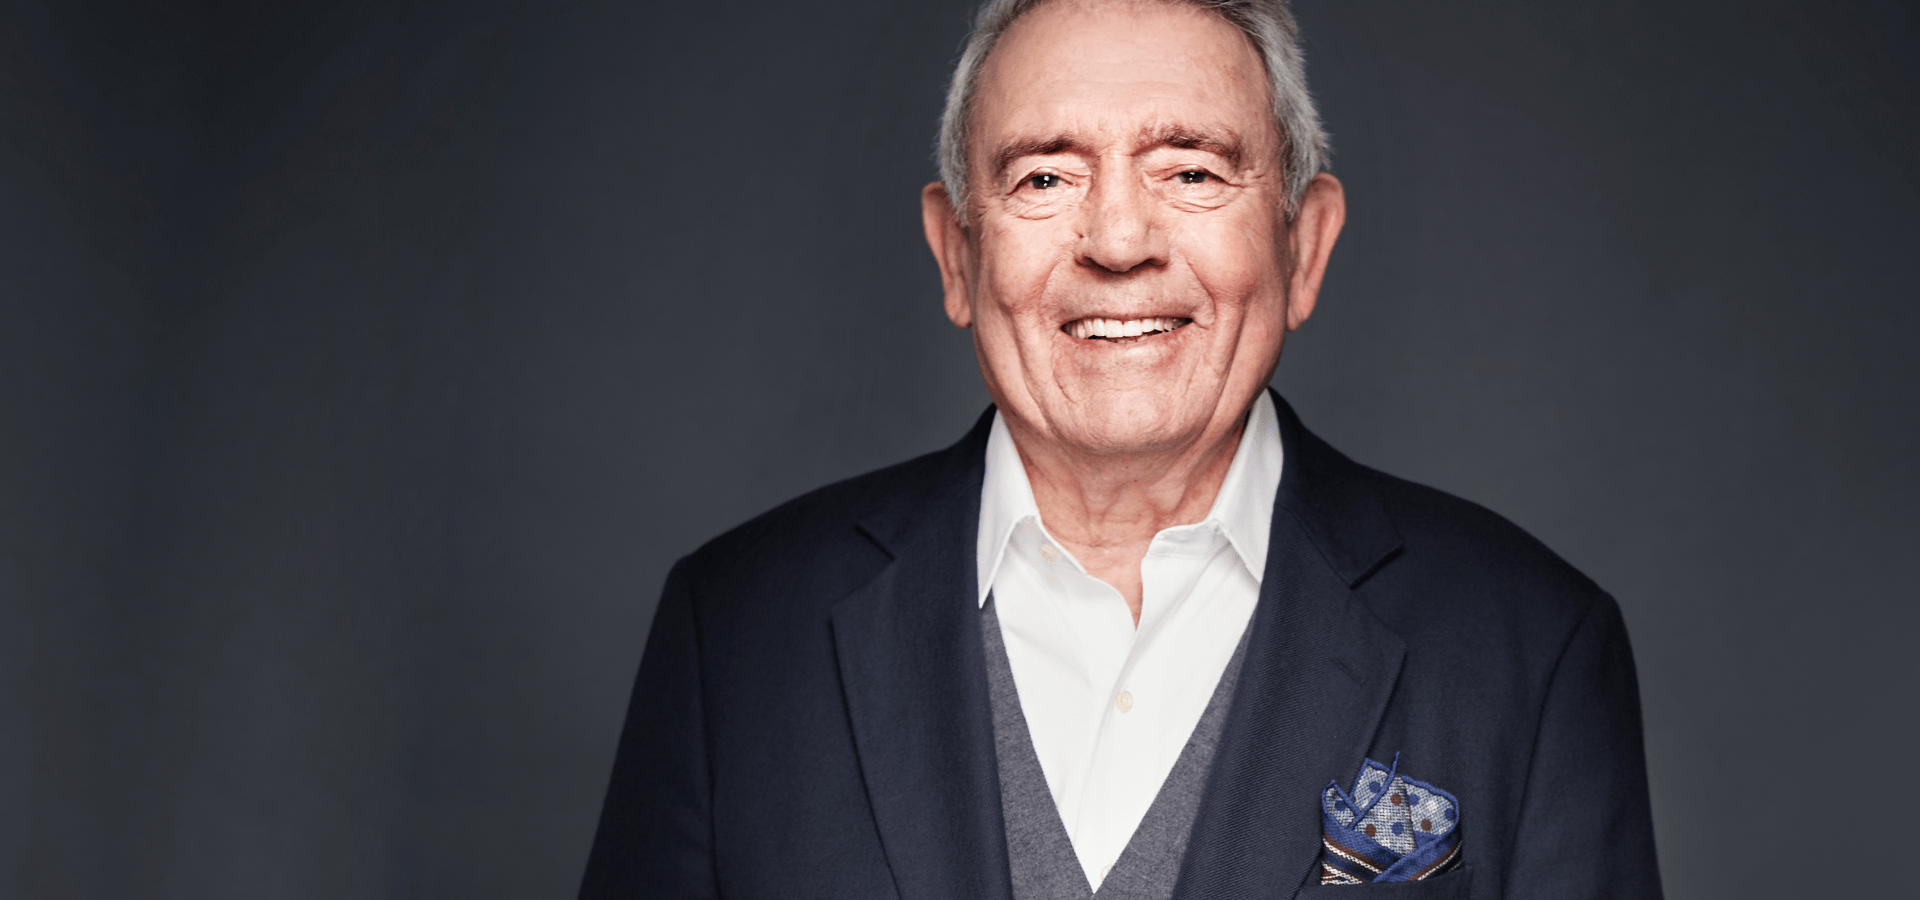 The Big Interview with Dan Rather – Season 3